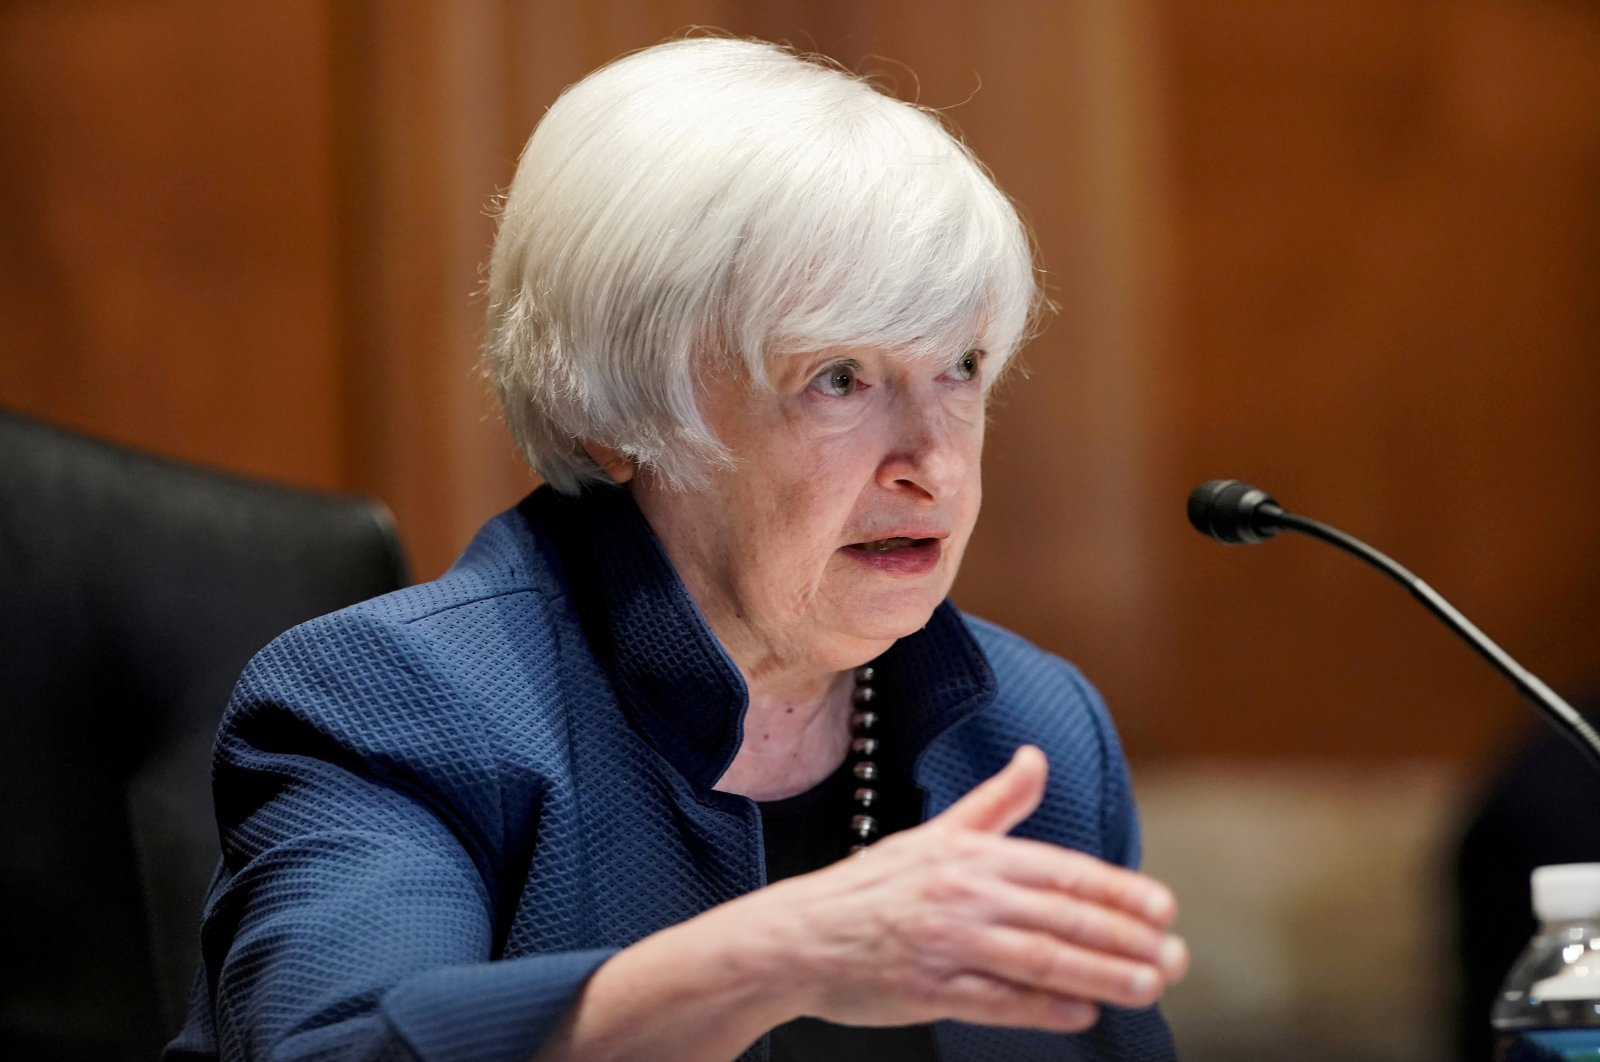 U.S. Treasury Secretary Janet Yellen answers questions during the Senate Appropriations Subcommittee hearing to examine the FY22 budget request for the Treasury Department on Capitol Hill in Washington, D.C., U.S., June 23, 2021. (Reuters Photo)